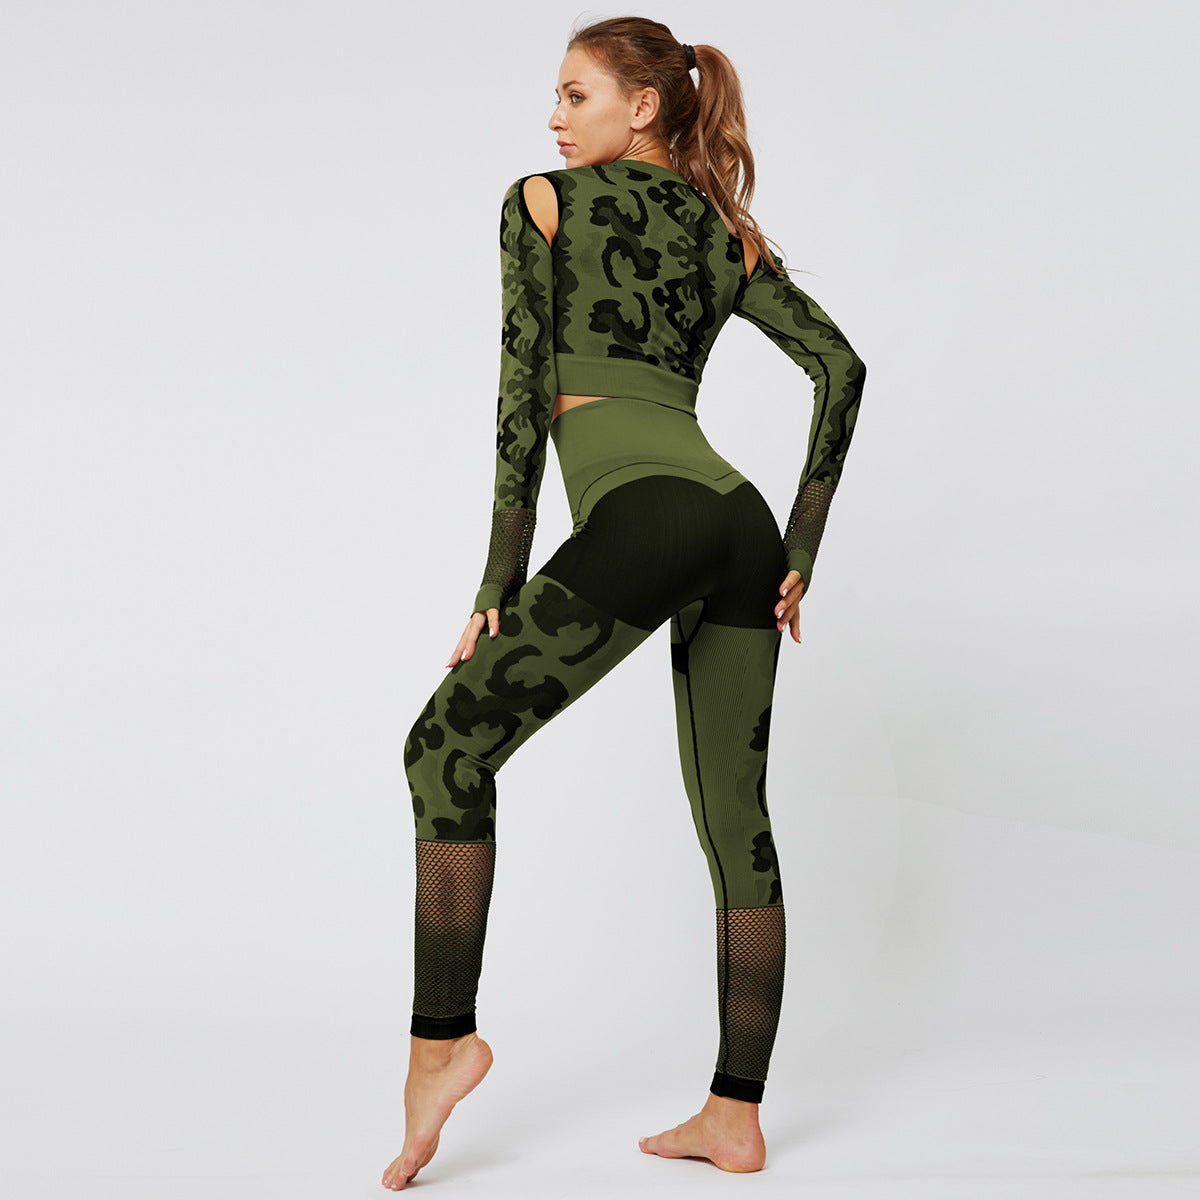 2020 Women Camouflage Hollow Out Outfits High Waisted Leggings Activewear Tracksuits Seamless Sportswear Yoga Suit YS-003